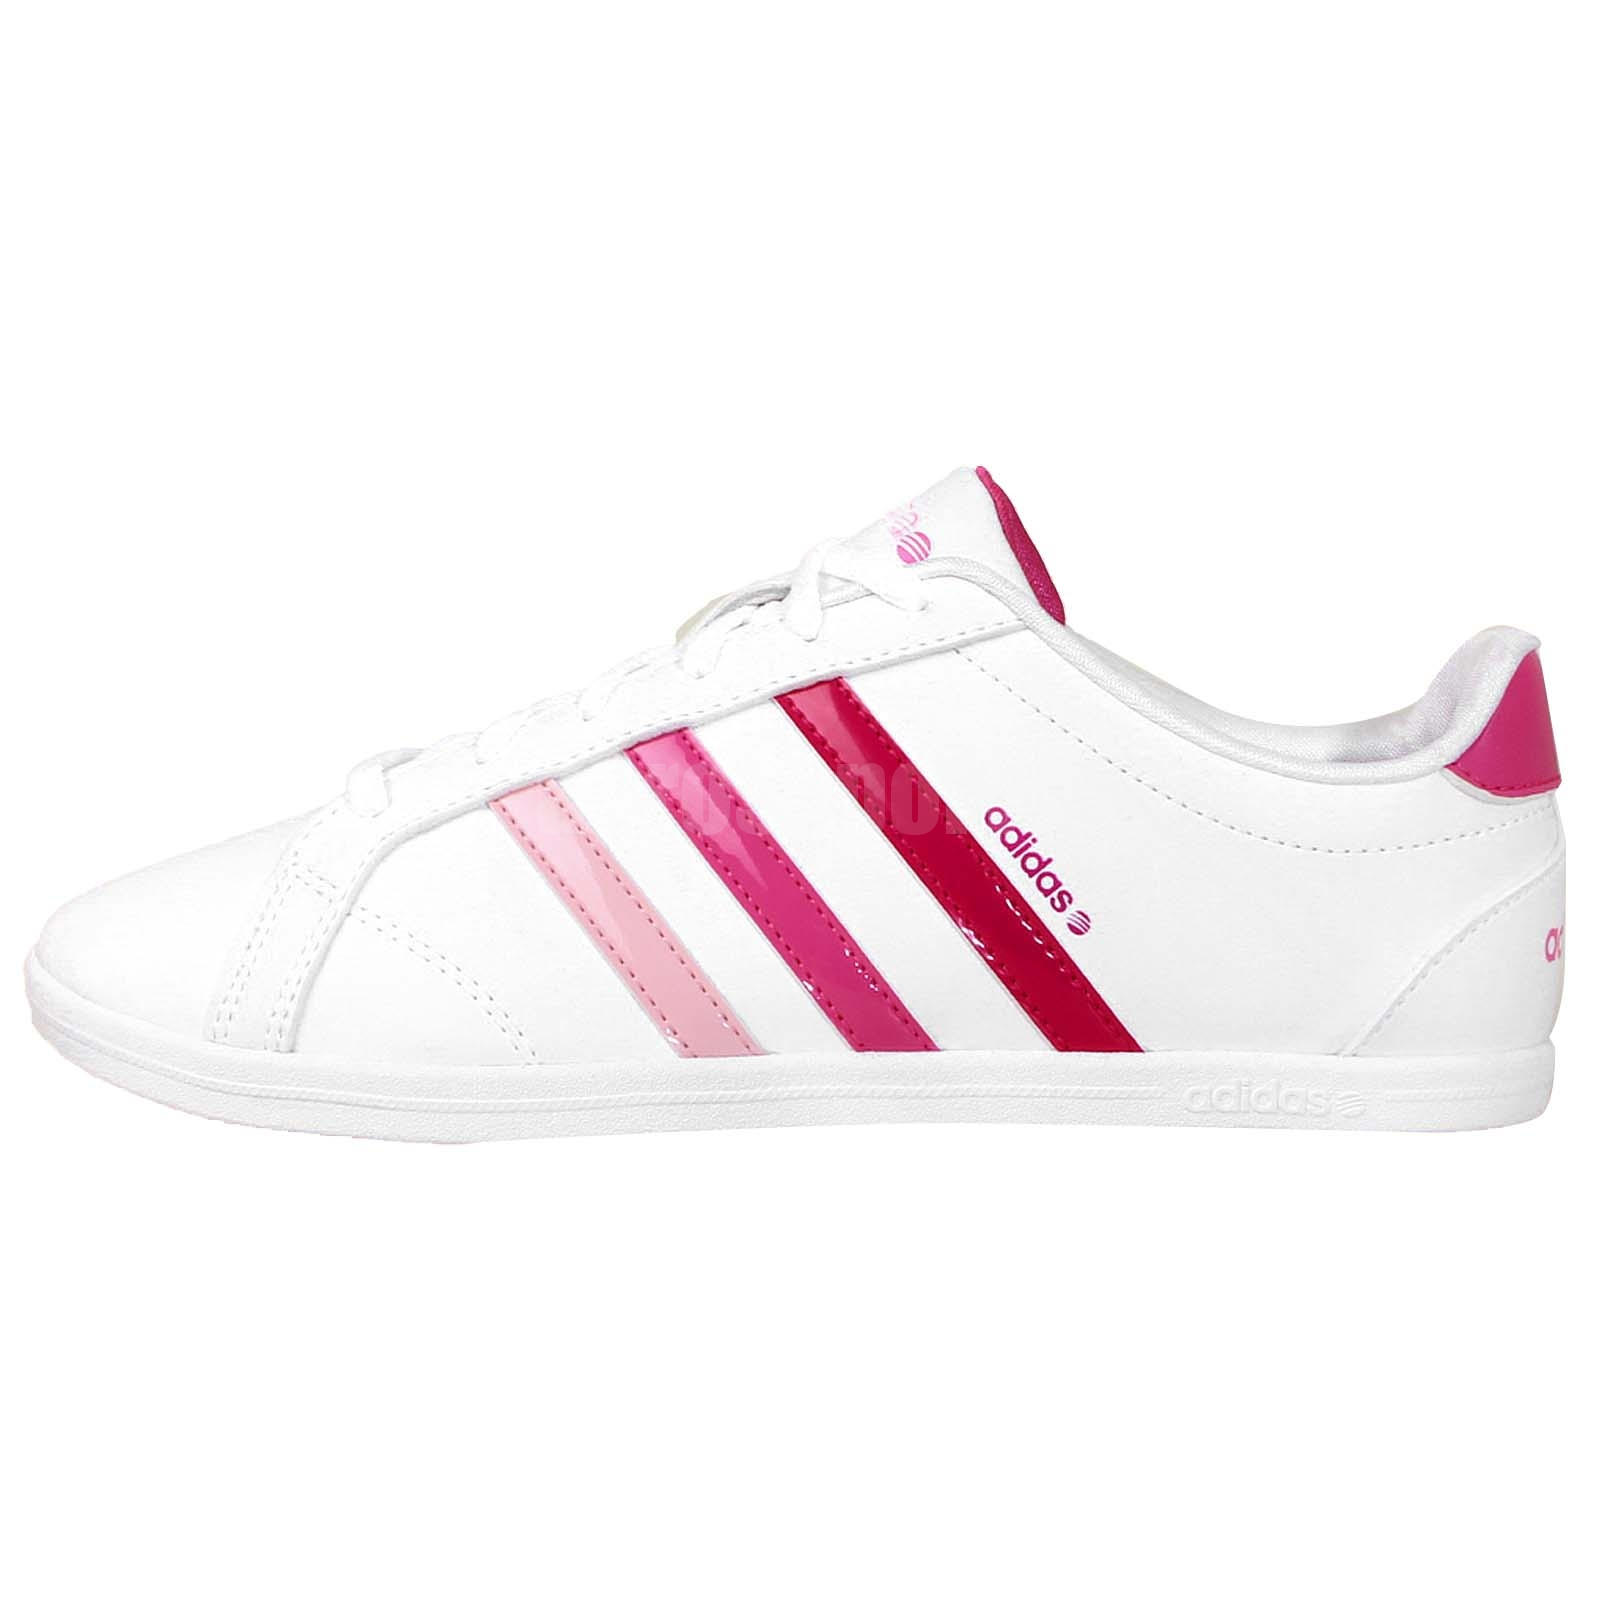 adidas coneo qt neo label white pink 2014 womens casual. Black Bedroom Furniture Sets. Home Design Ideas